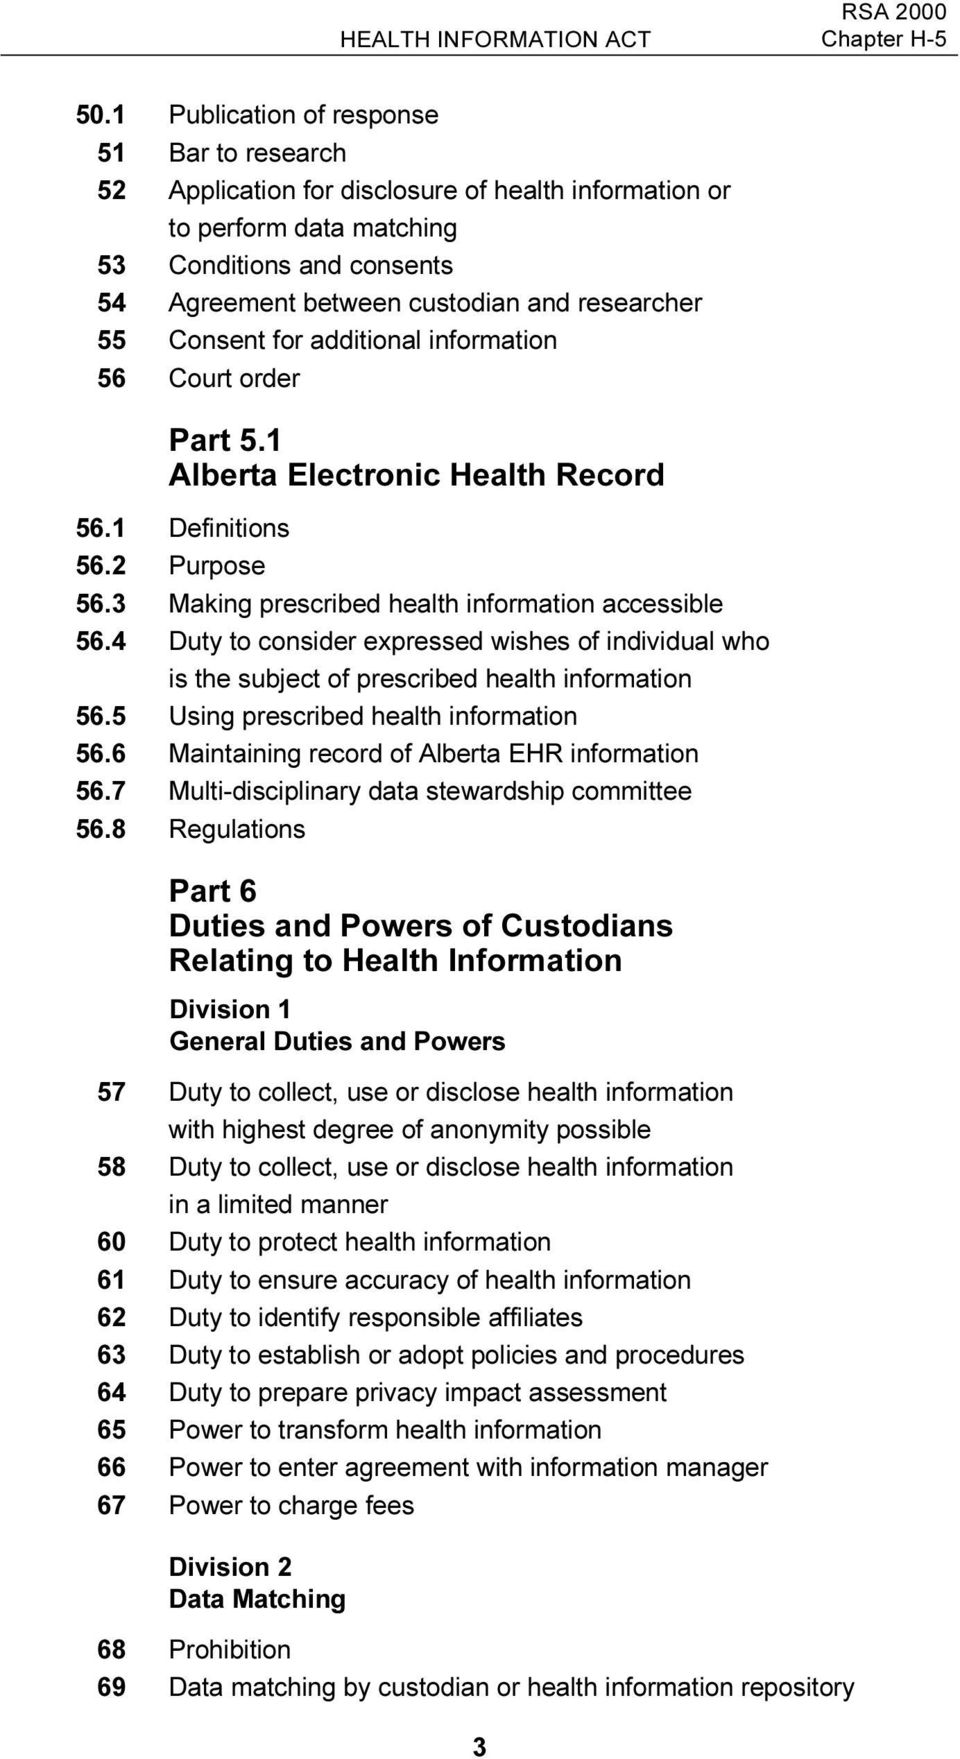 55 Consent for additional information 56 Court order Part 5.1 Alberta Electronic Health Record 56.1 Definitions 56.2 Purpose 56.3 Making prescribed health information accessible 56.